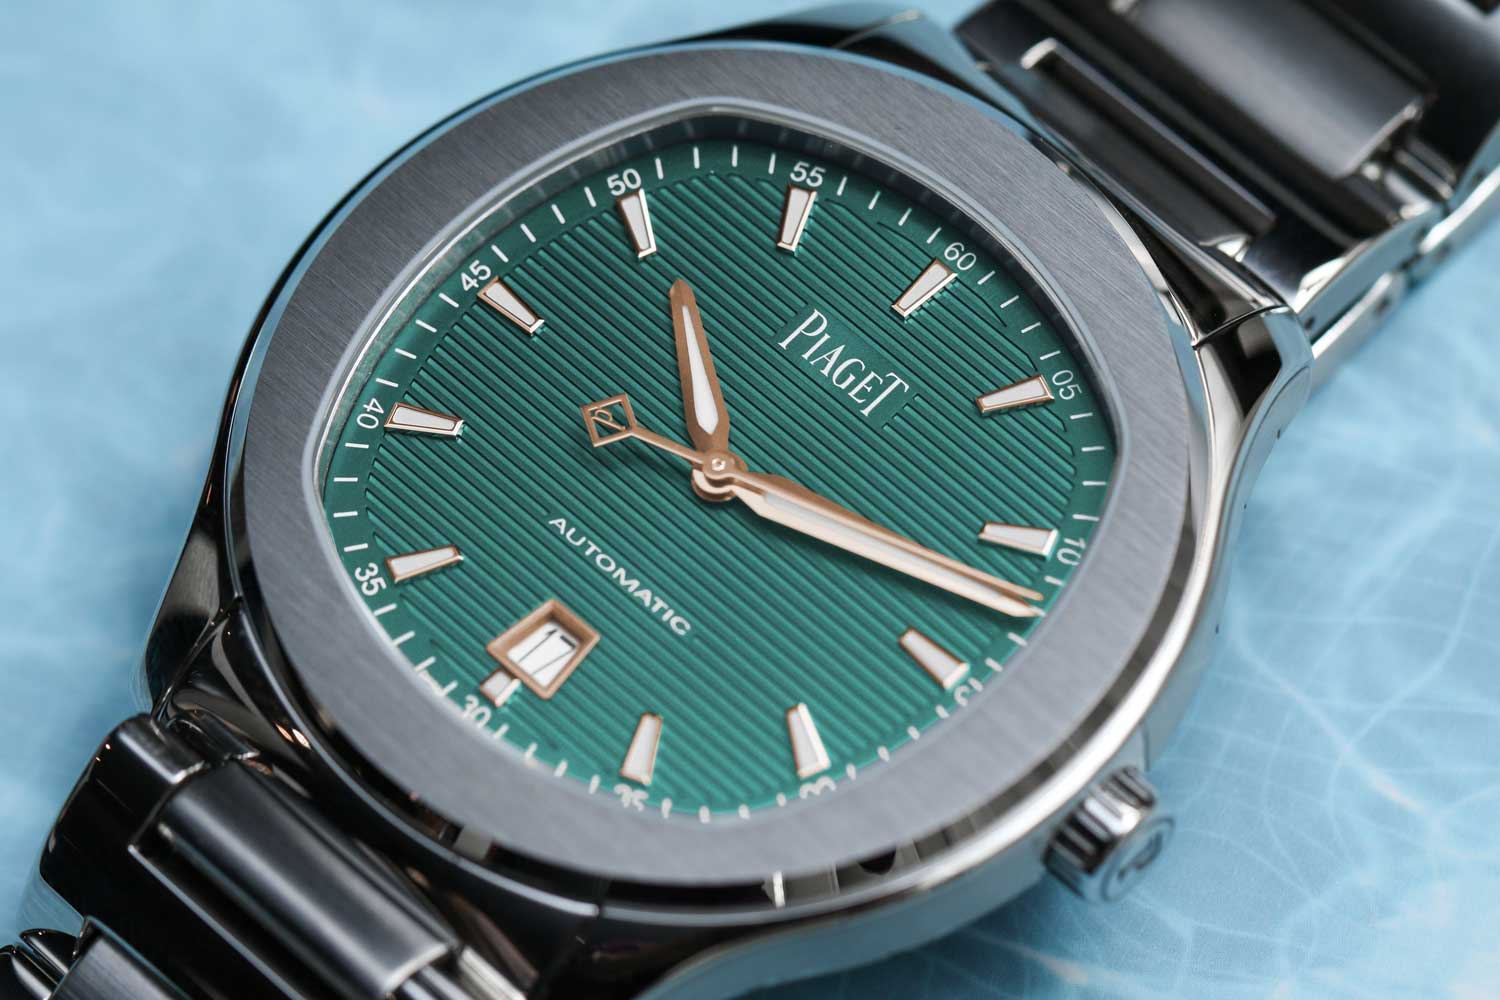 Piaget Polo S in Green (Image © Revolution)